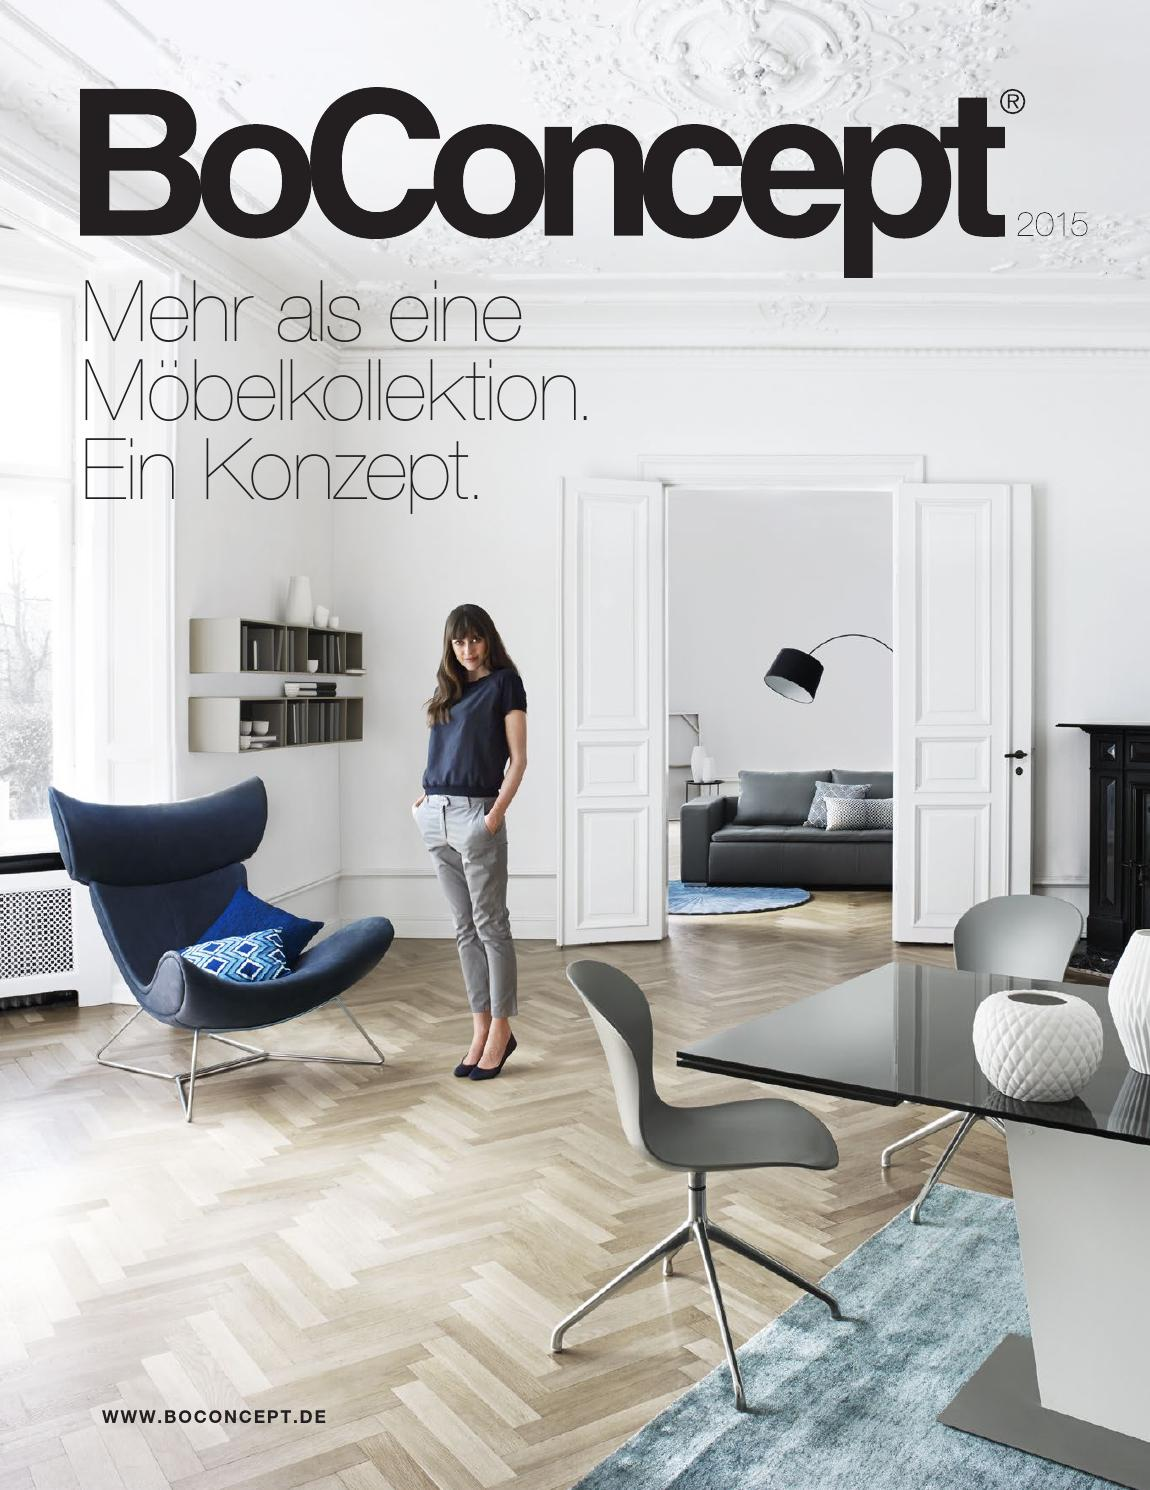 Boconcept Hannover New Collection 2015 Katalog Pdf By Boconcept Hannover Issuu